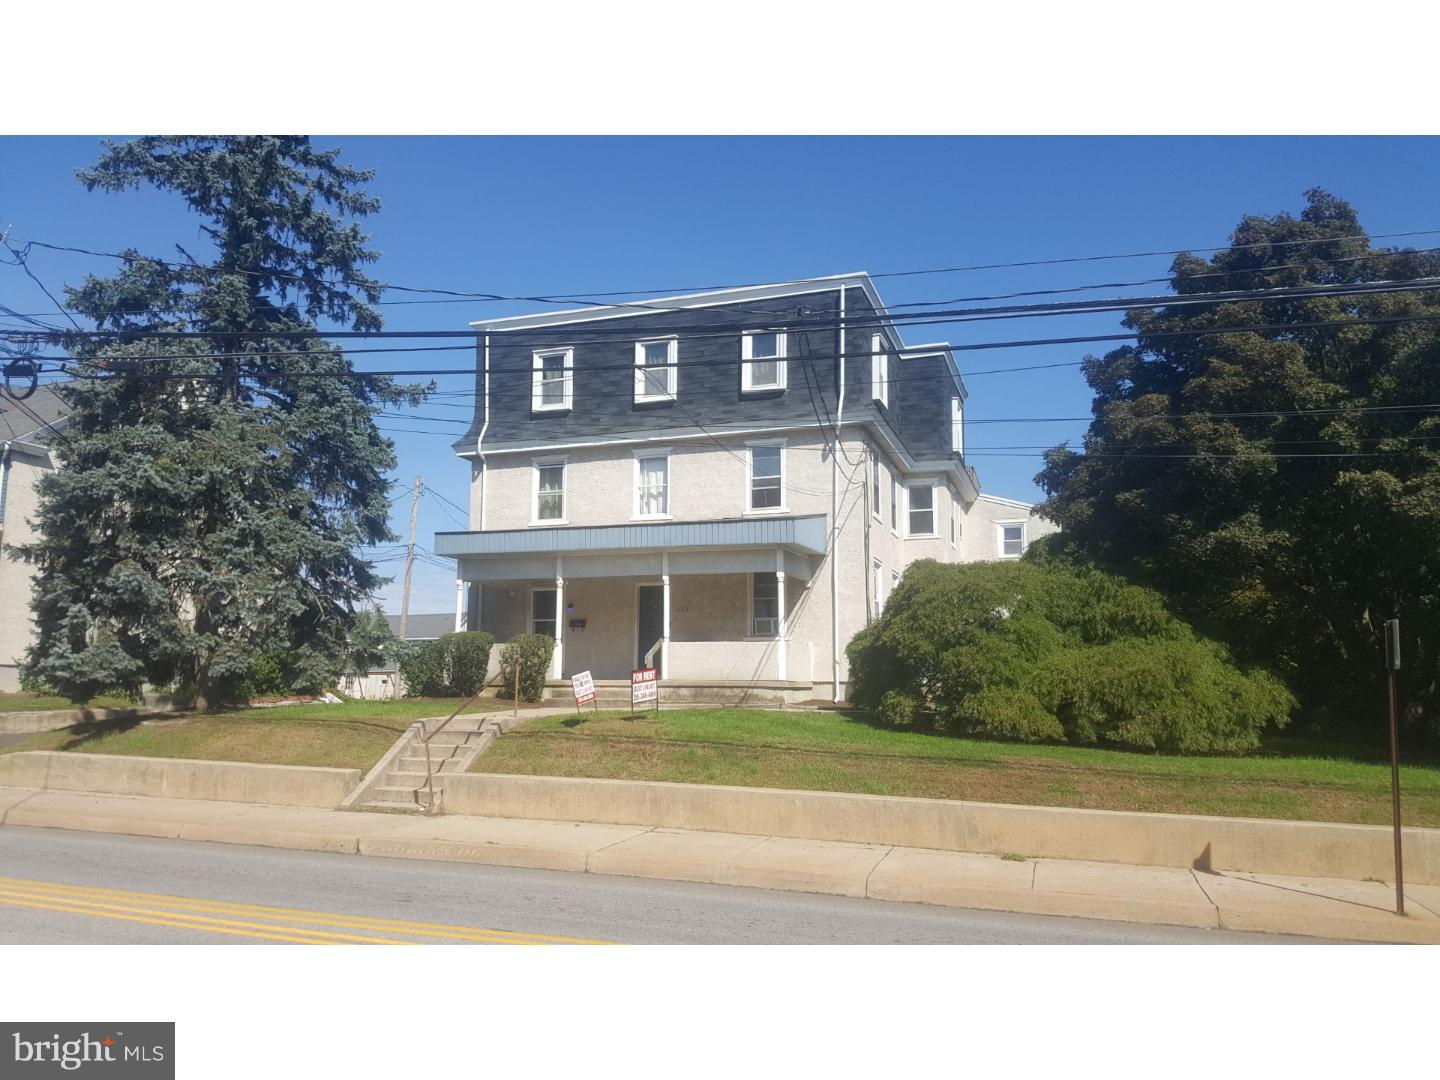 529 S MAIN STREET, HATFIELD, PA 19440